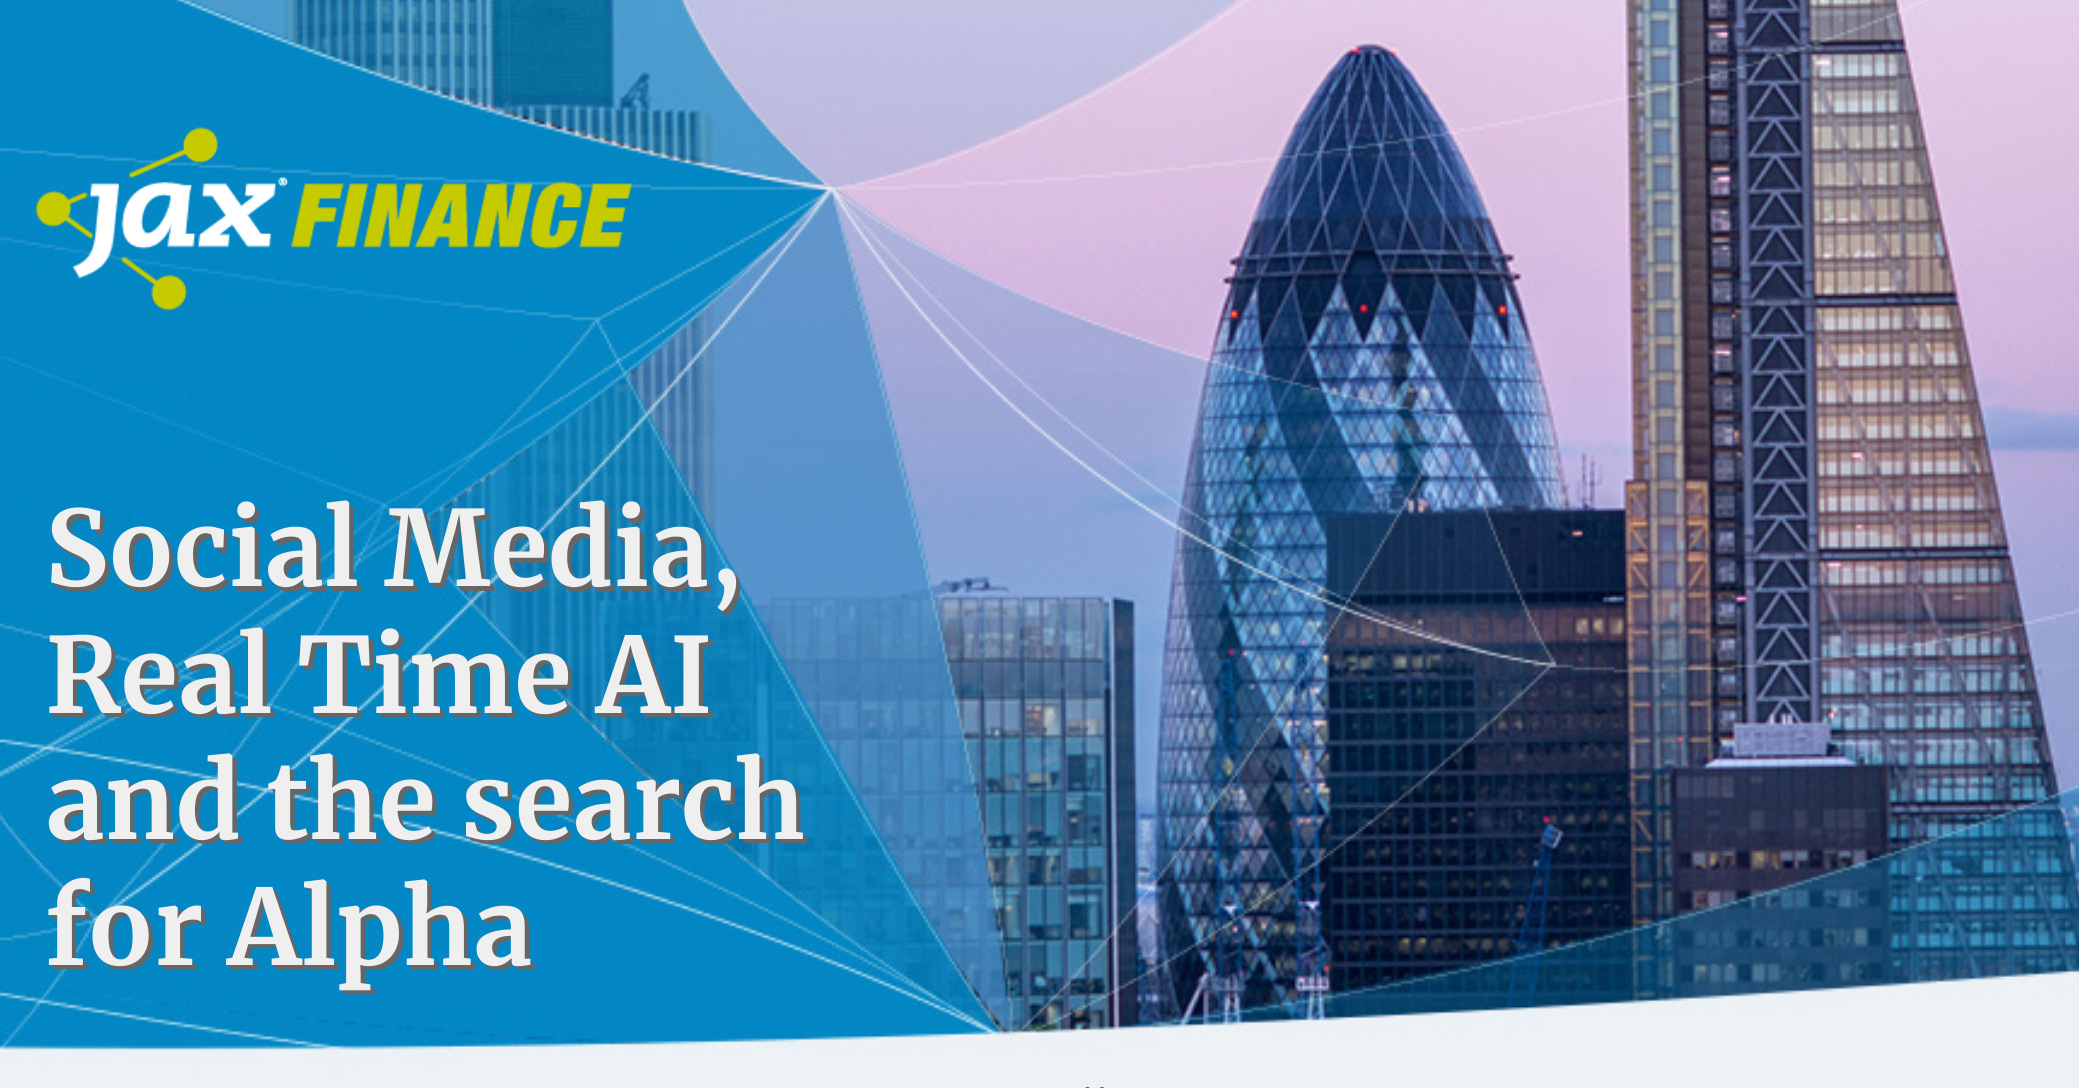 Social Media, Real Time AI and the search for Alpha